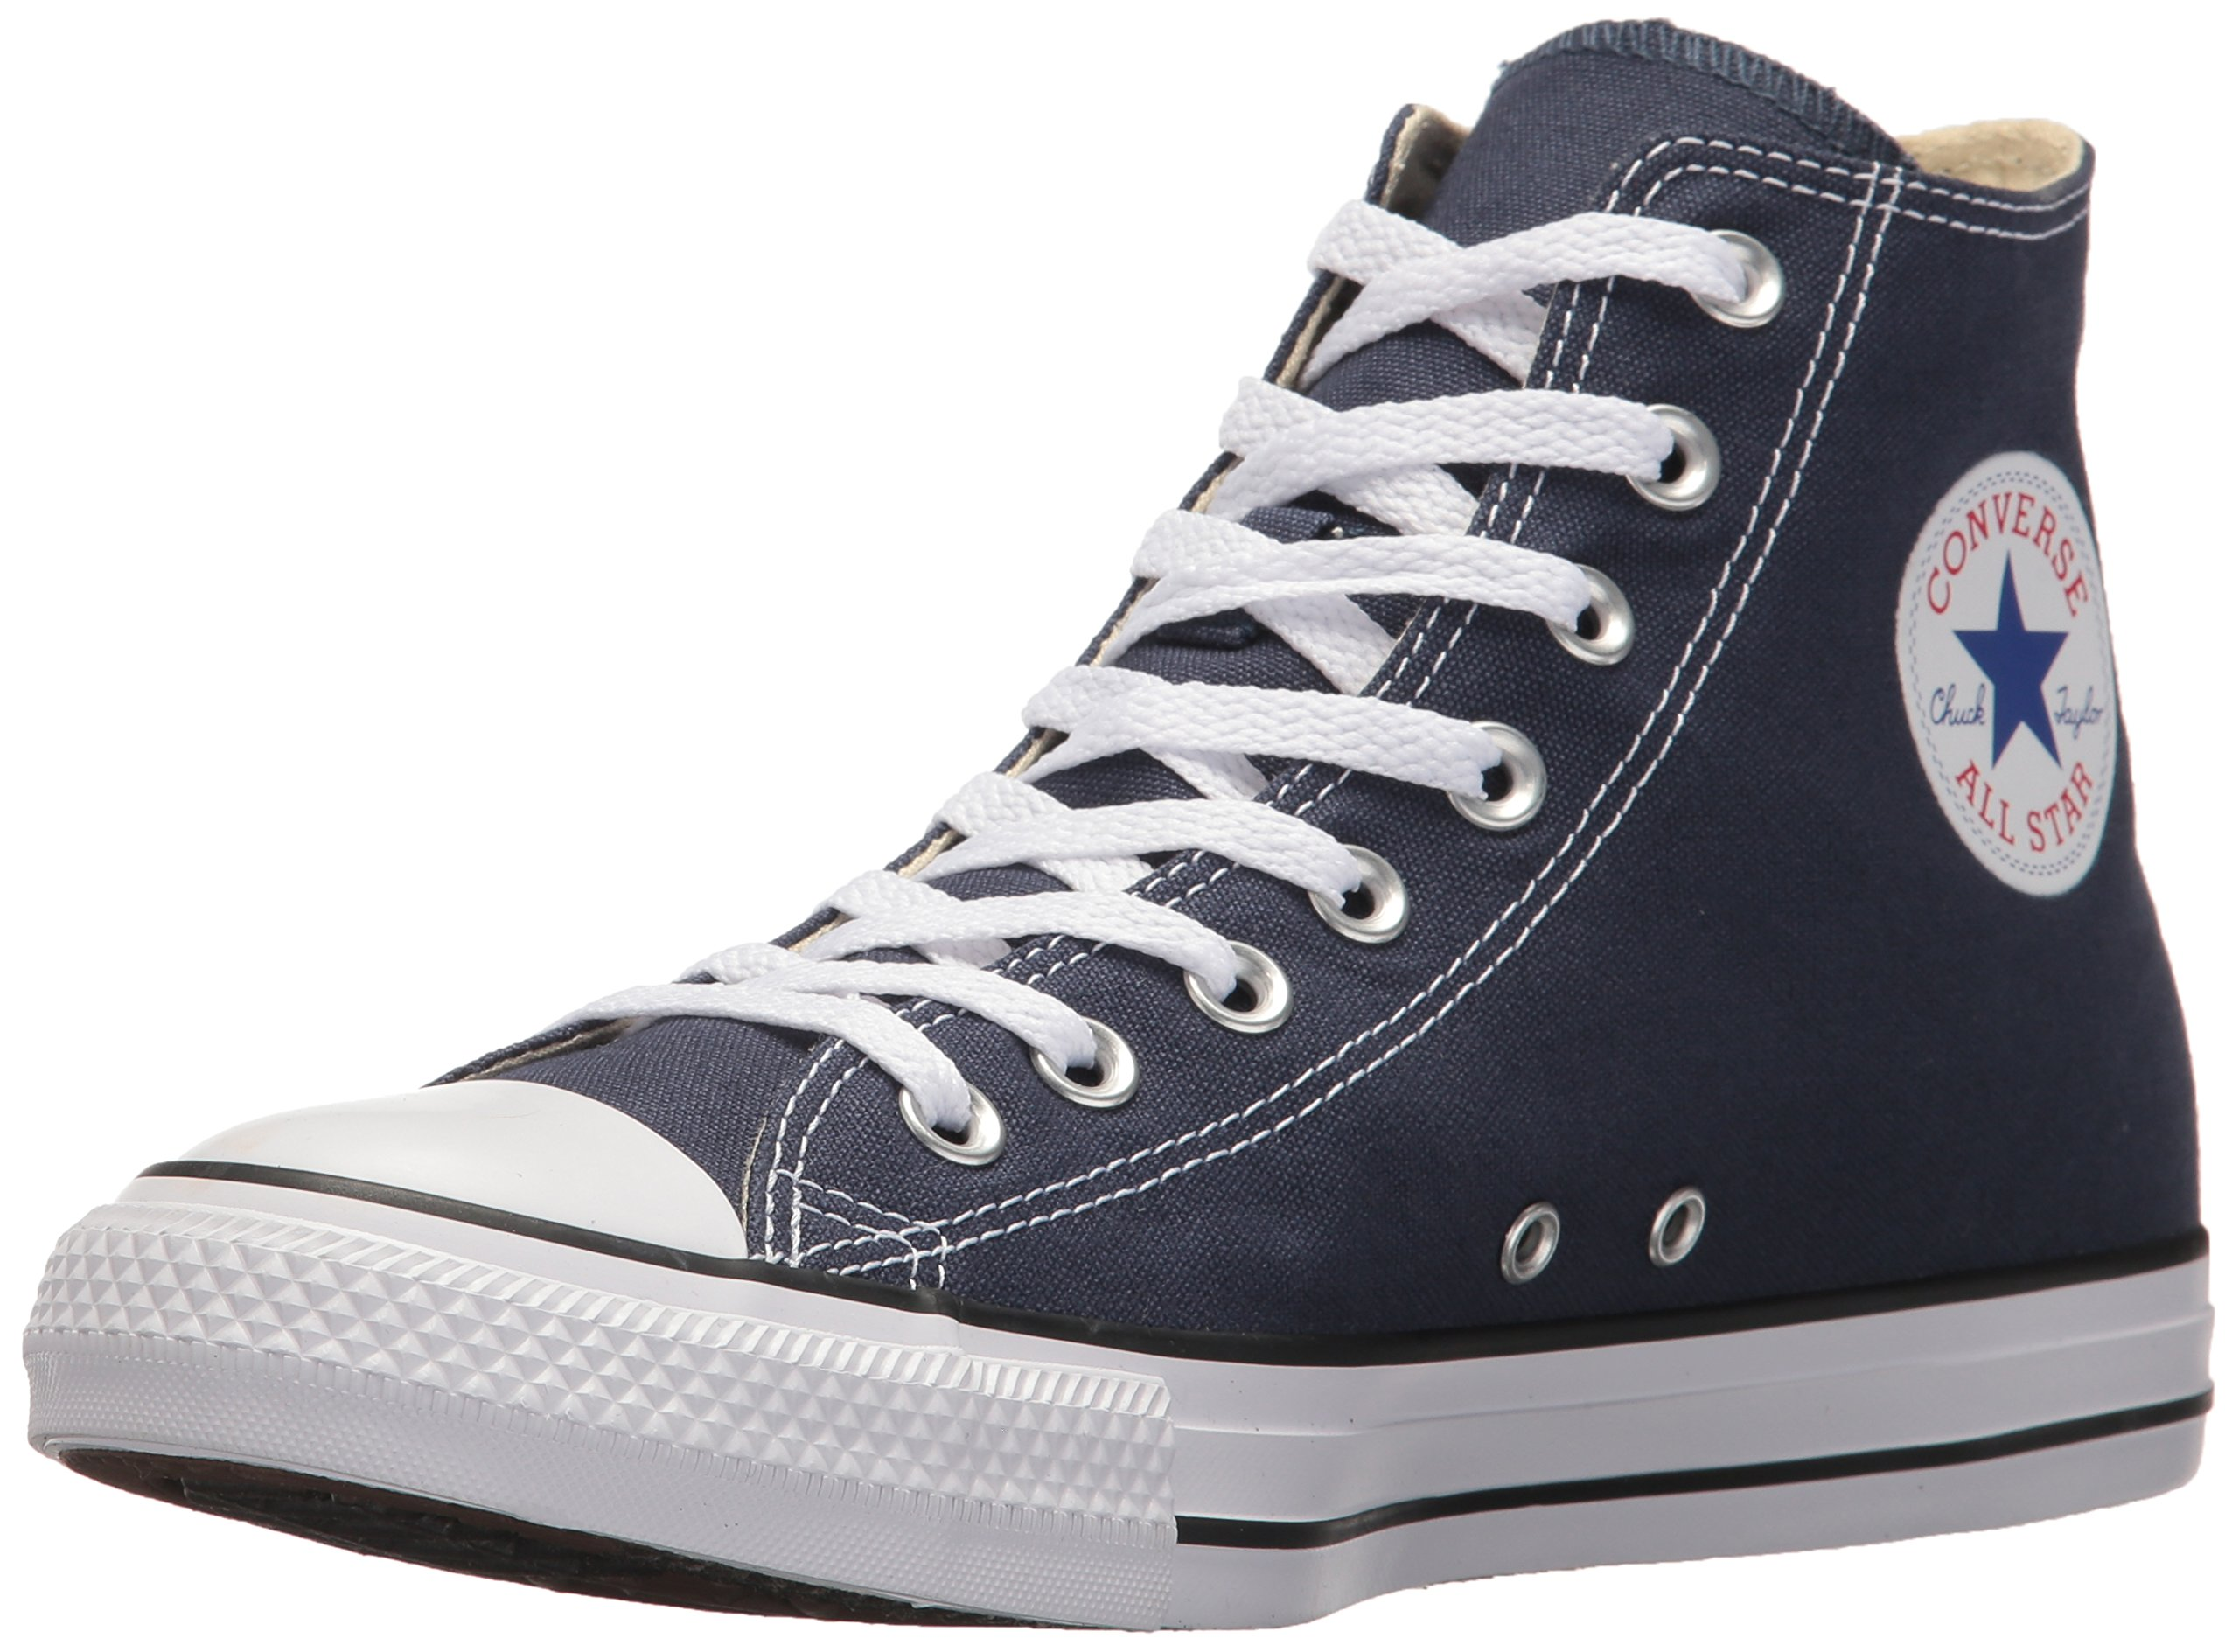 Converse Chuck Taylor All Star Canvas High Top Sneaker, Navy, 8 D(M) US by Converse